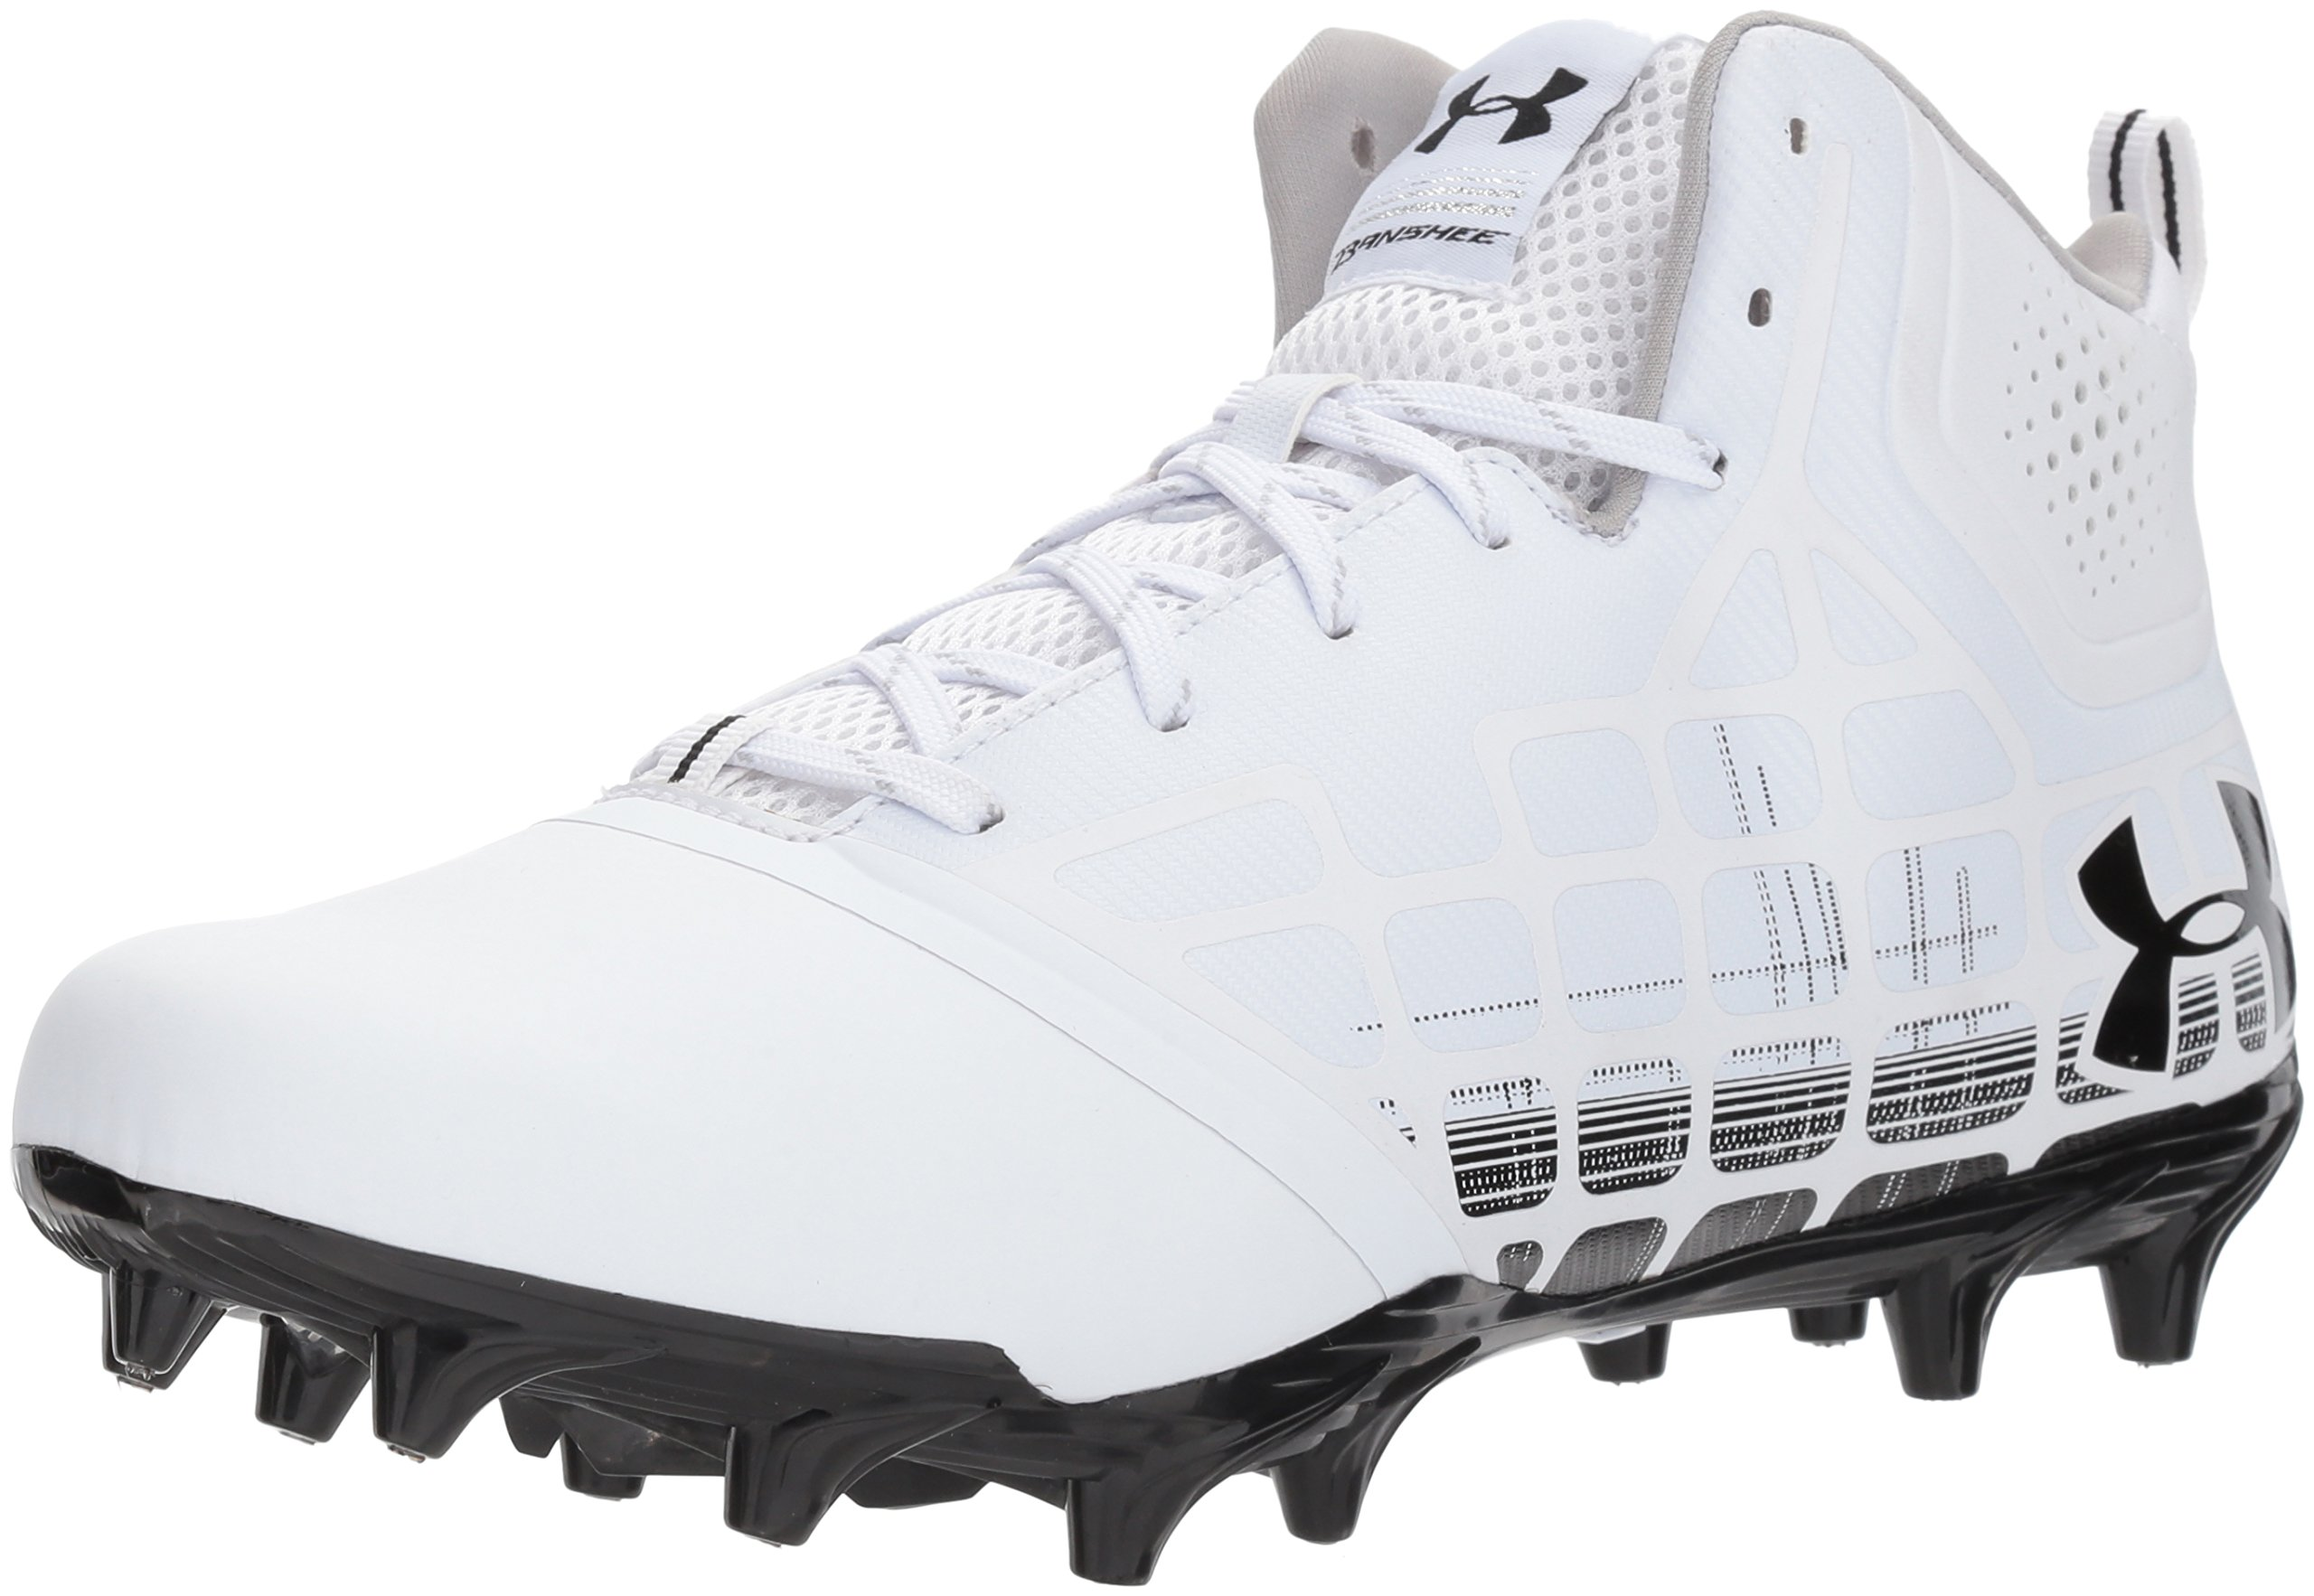 Under Armour Men's Banshee Ripshot MC Lacrosse Shoe, White (101)/Black, 12 by Under Armour